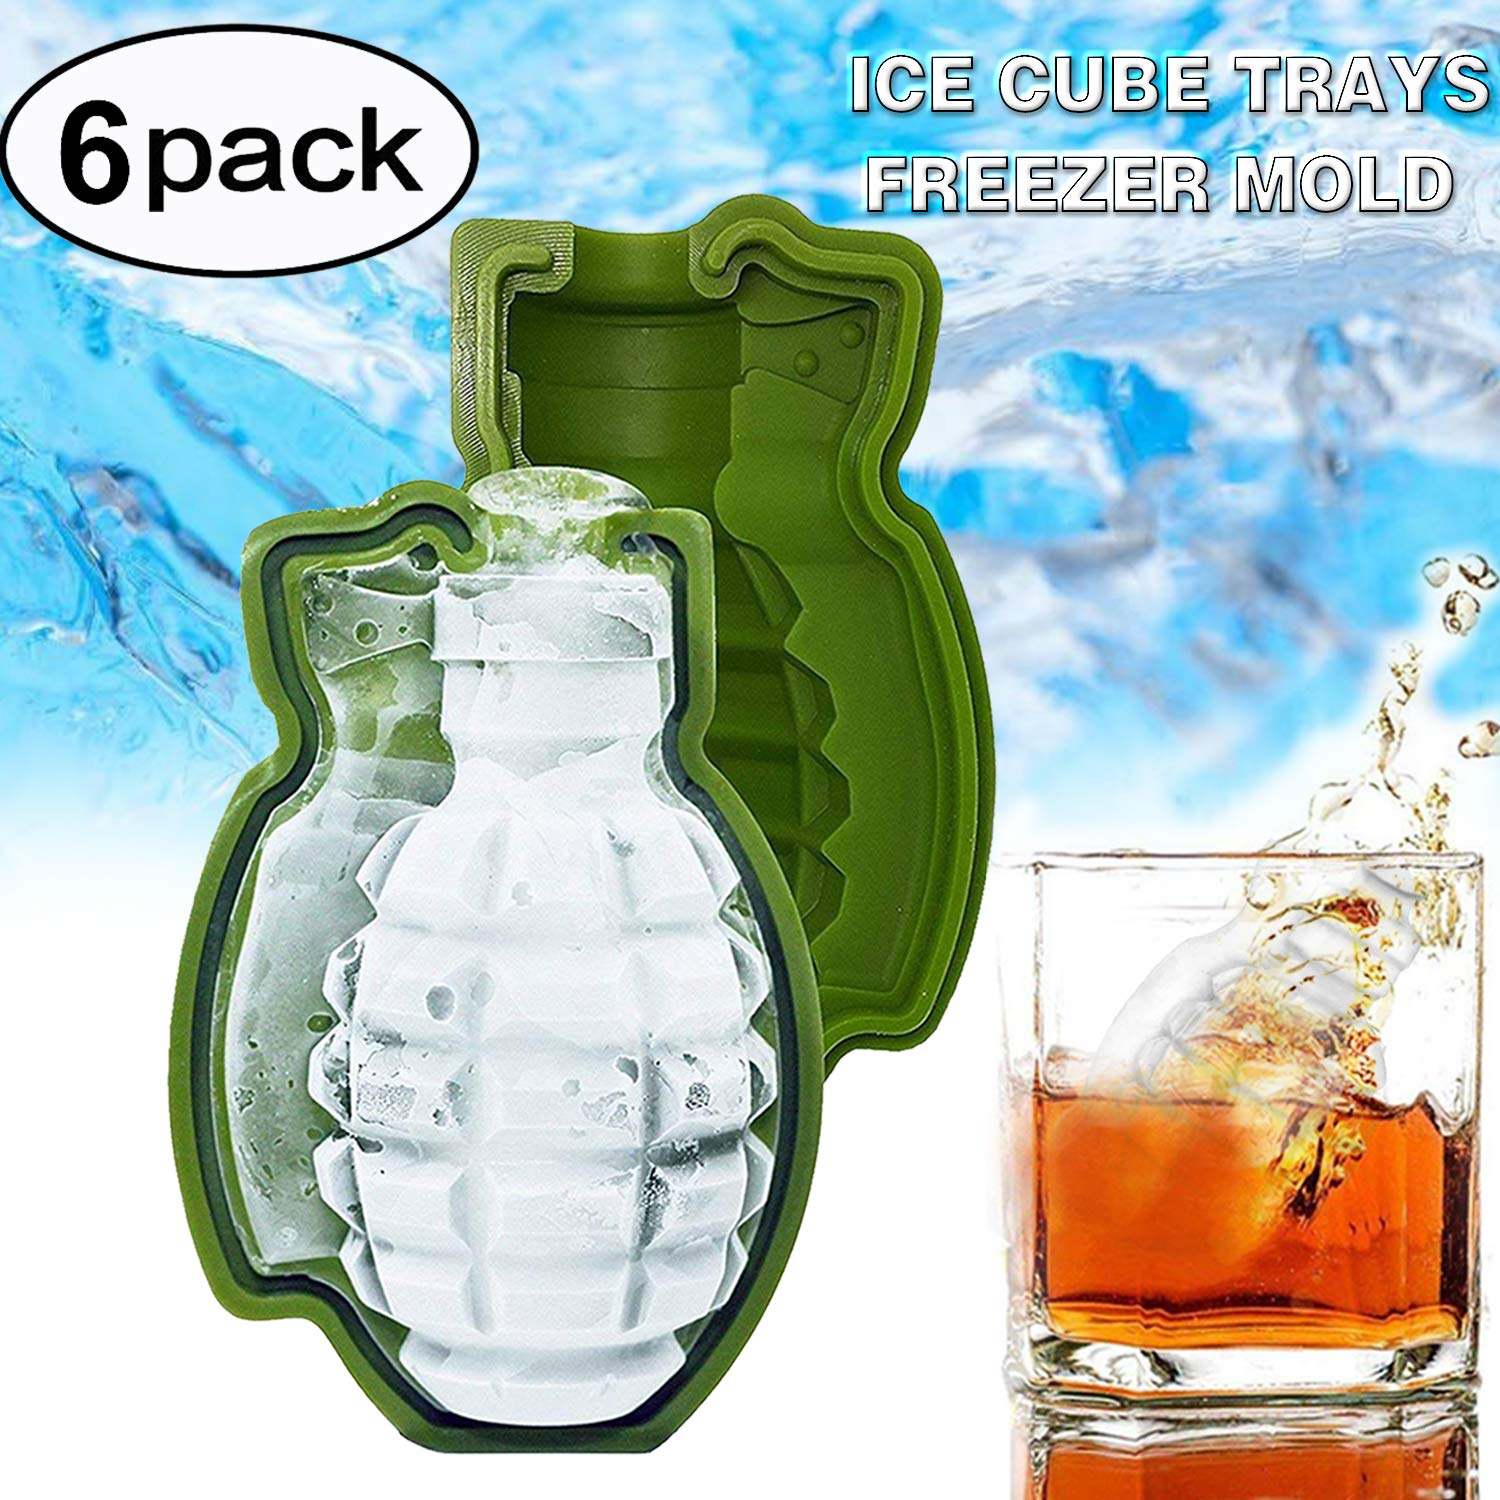 Genevo 6 Pack 3D Ice Cube Mold Grenade Shape Bar Party, Flexible Silicone Trays Freezer Mold Gift Tool for Whisky Cocktail Ice Ball ,Chilled Drinks, Molds 2.5 Inch Removable Ice Block for Halloween